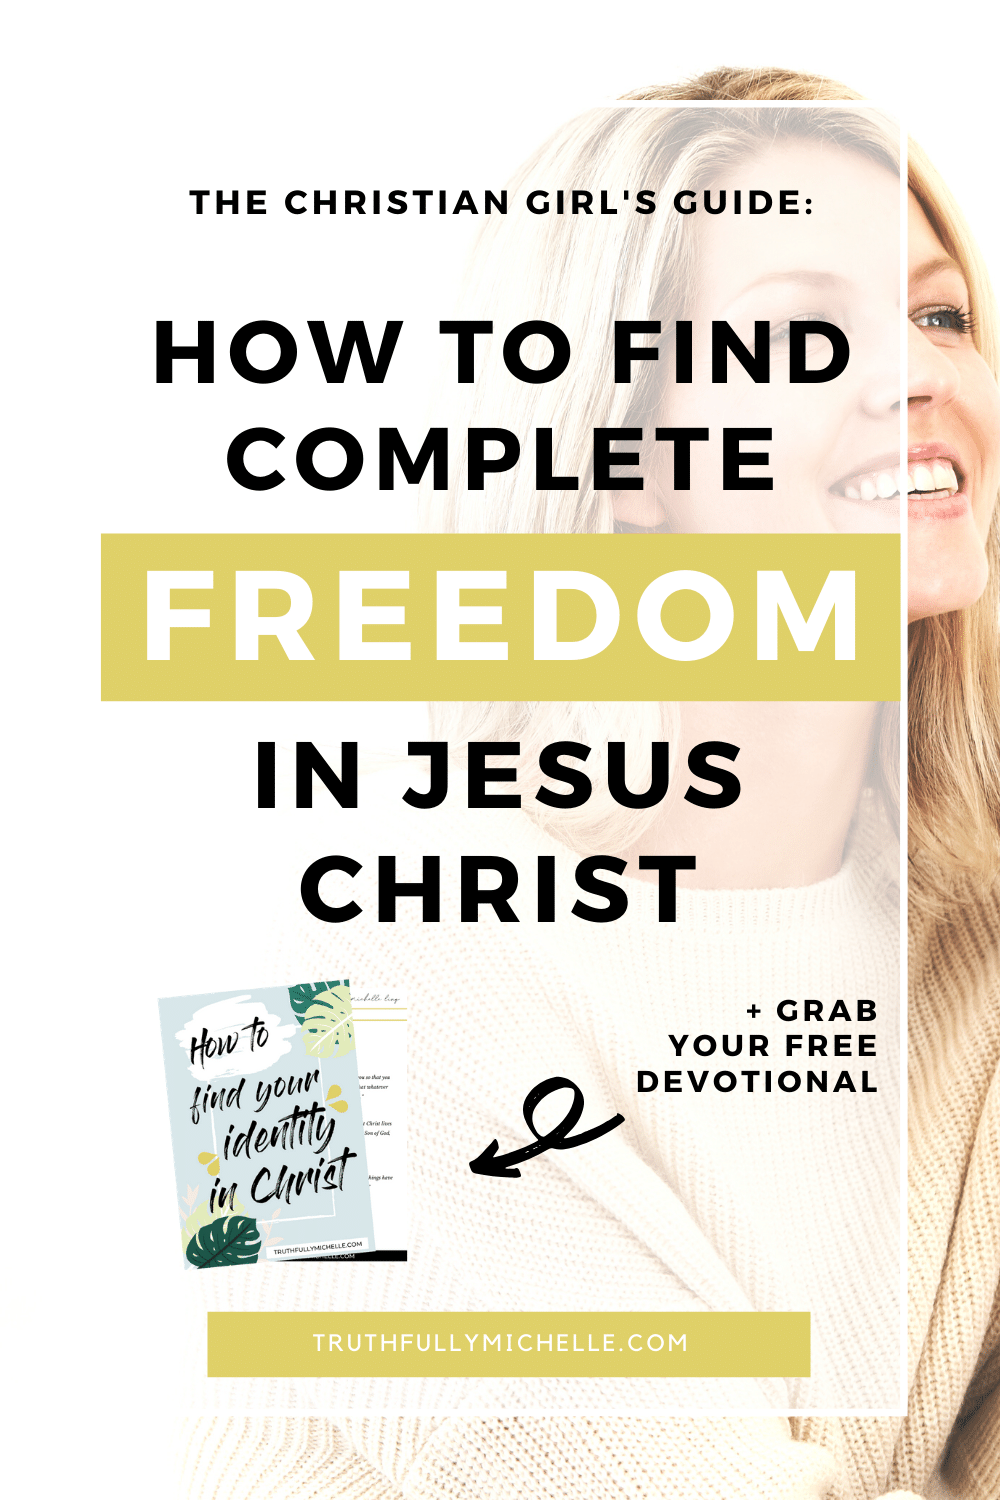 freedom in Christ, freedom in Jesus, freedom in God, finding freedom in Christ, steps to freedom in Christ, the steps to freedom in Christ